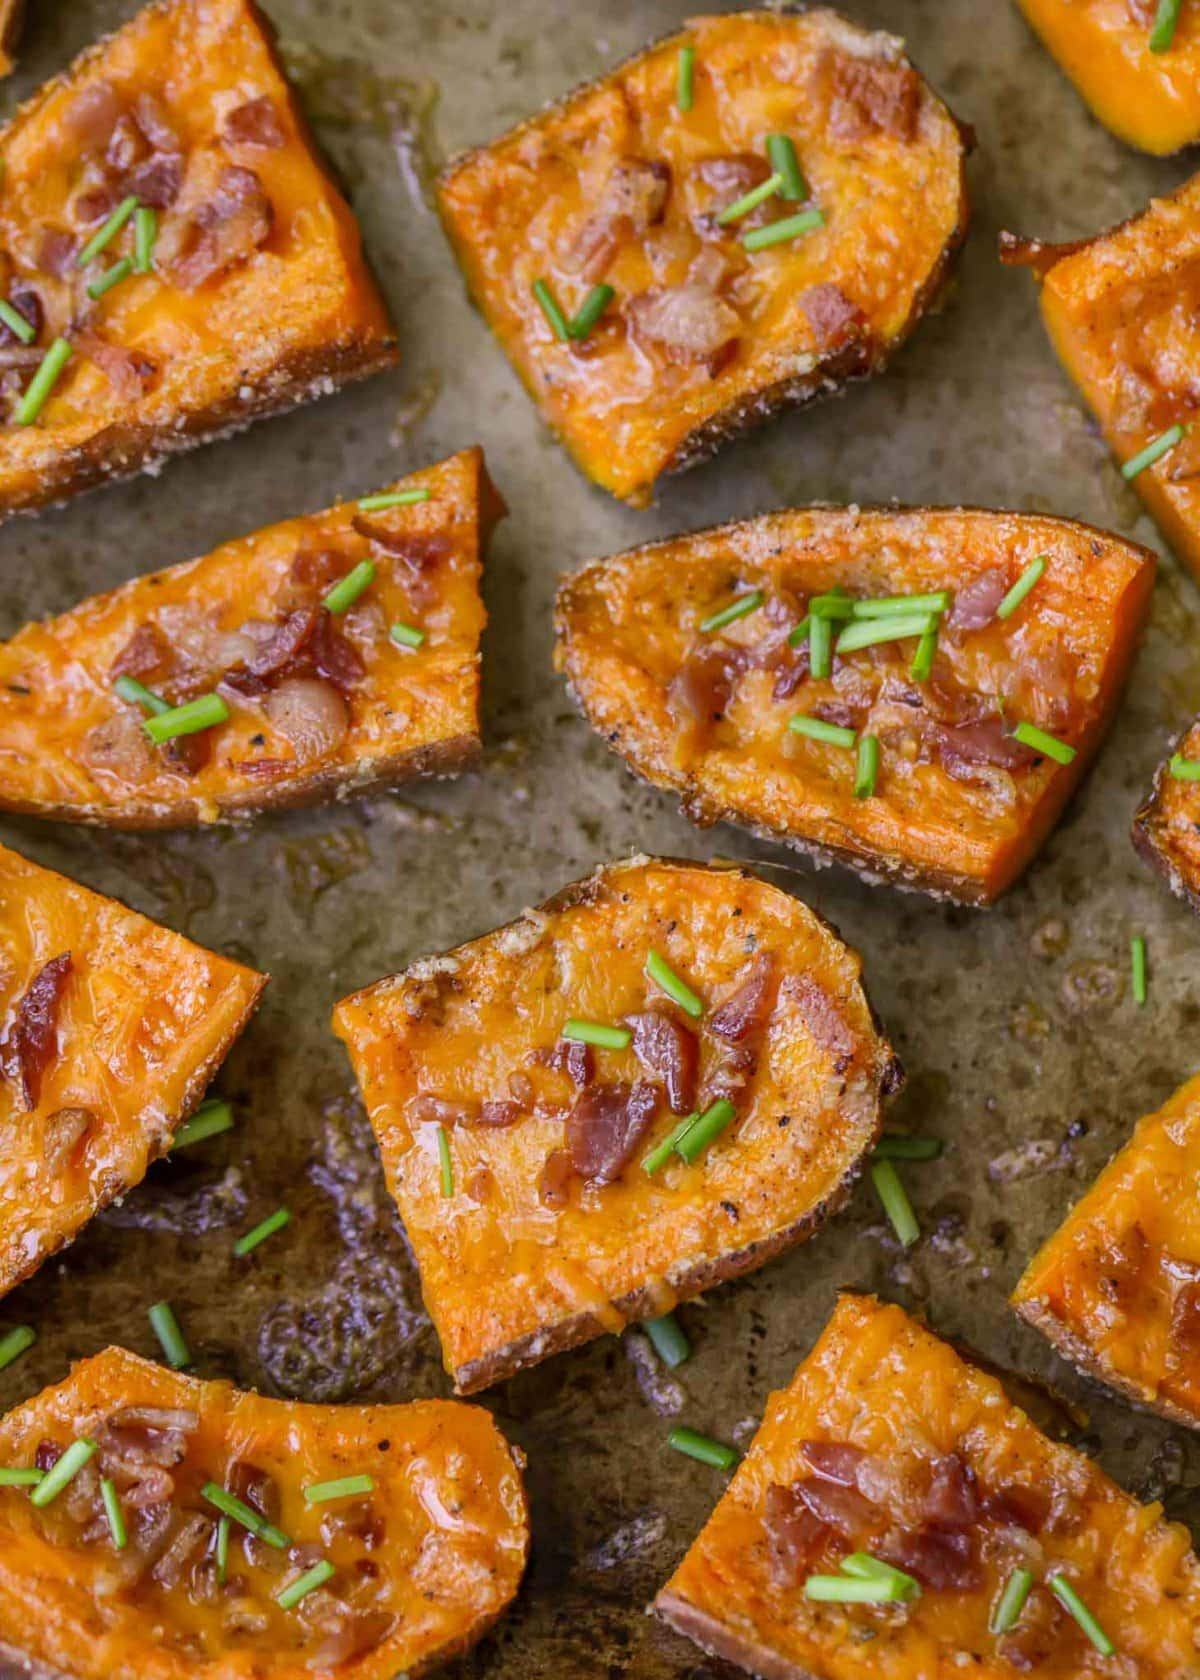 Sweet Potato Skins - a delicious appetizer with a buttery Parmesan crusted glaze and topped with bacon and chives.